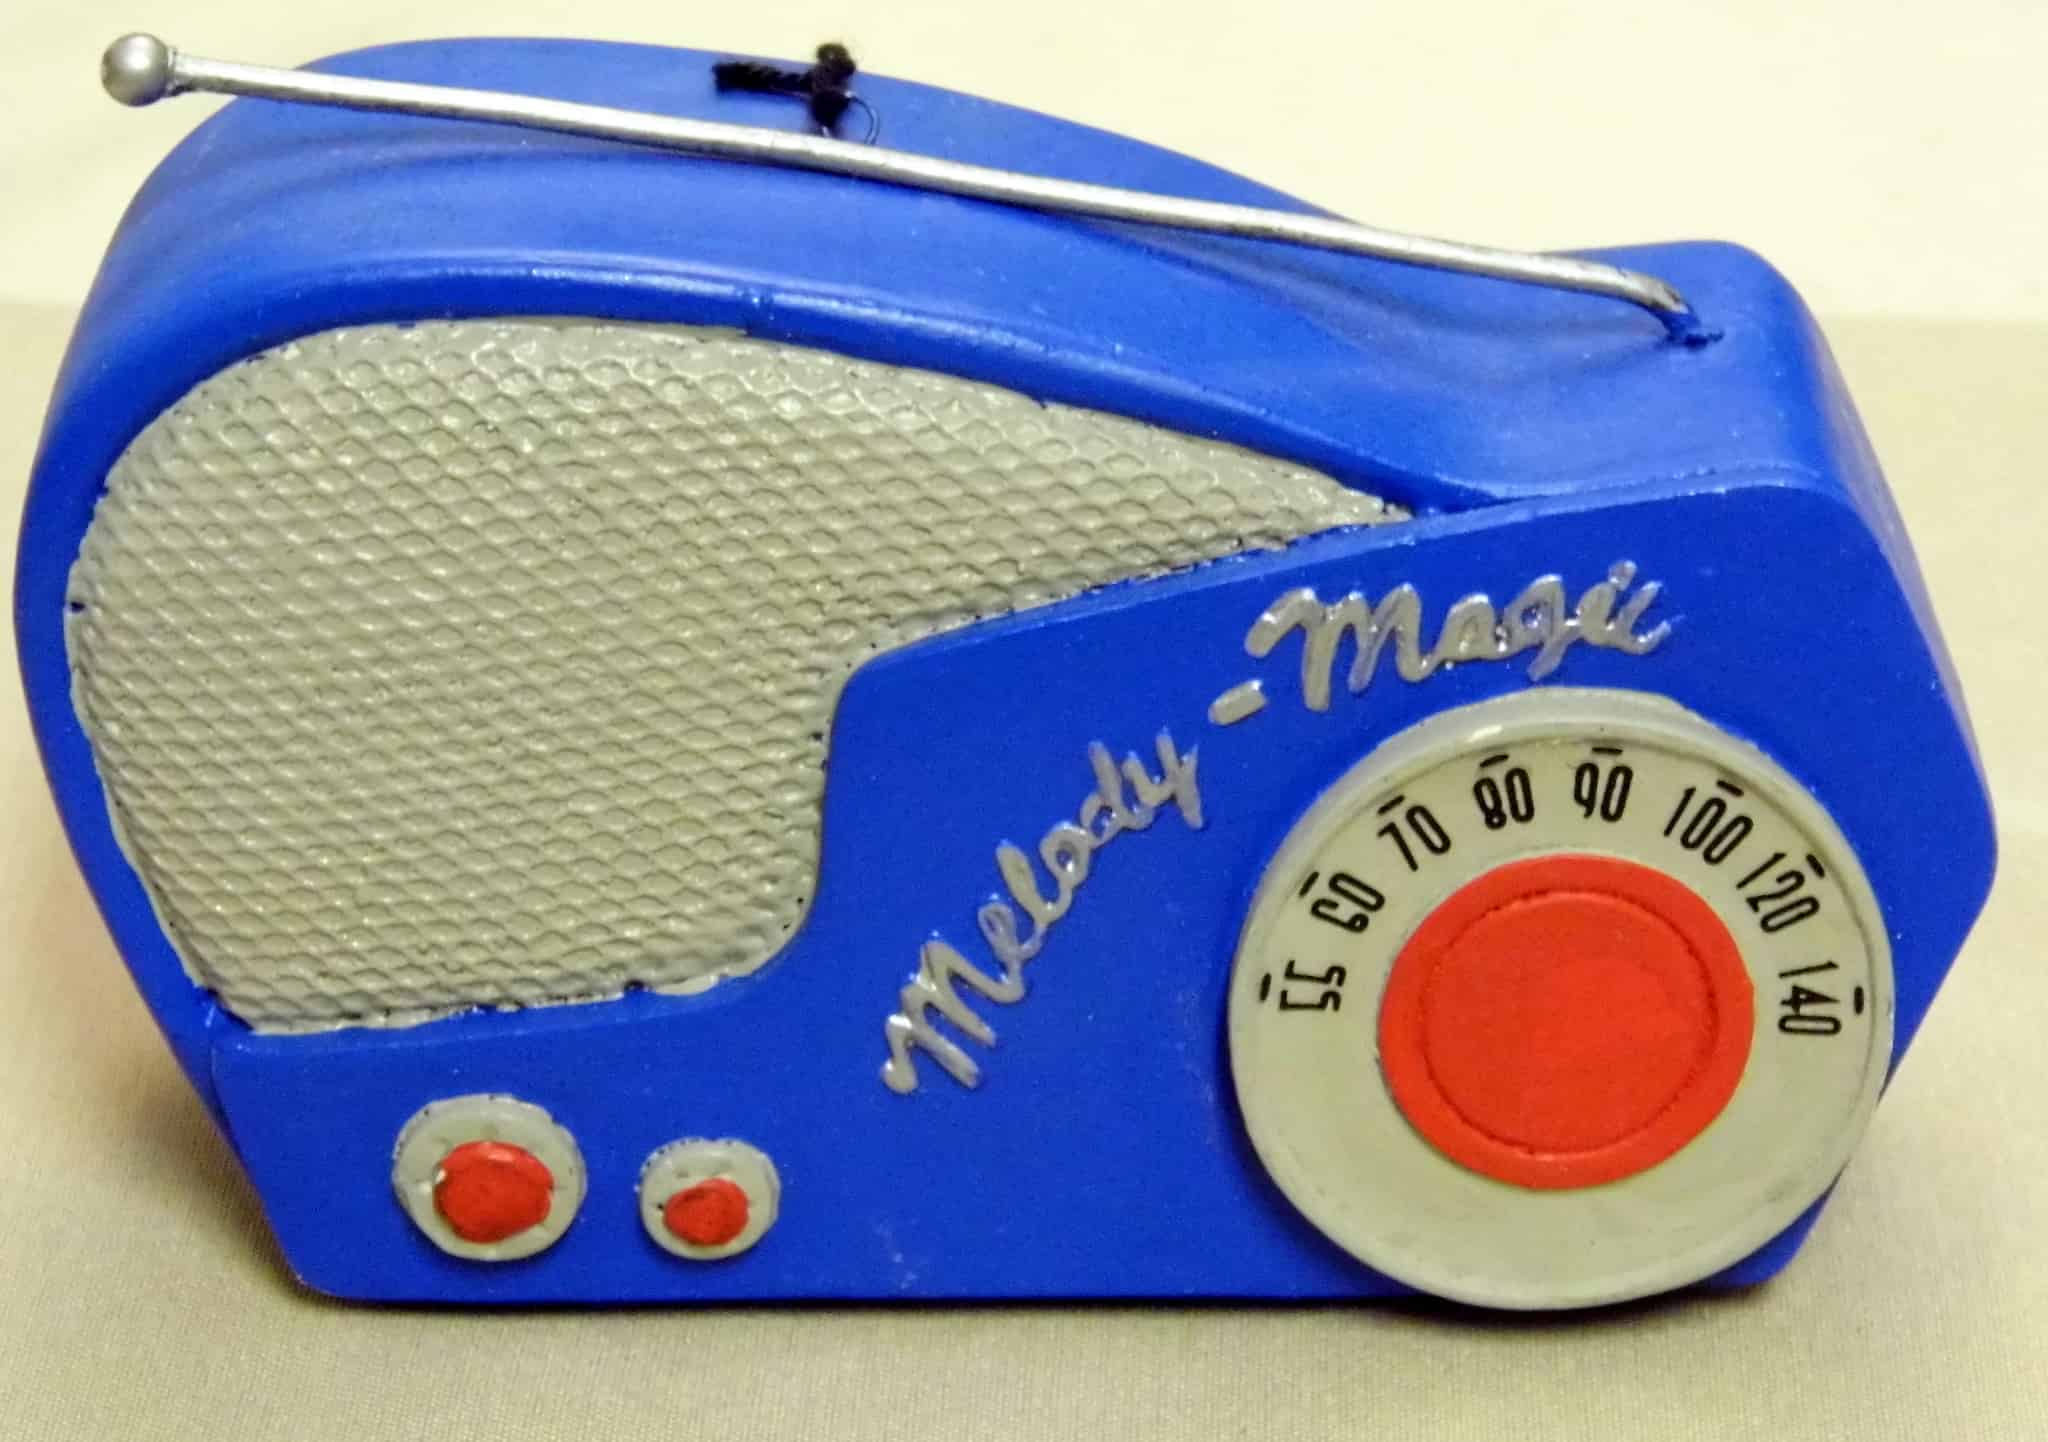 Joe Haupt Christmas Ornament in the Shape of a Vintage Radio Melody Magic by Midwest of Cannon Falls